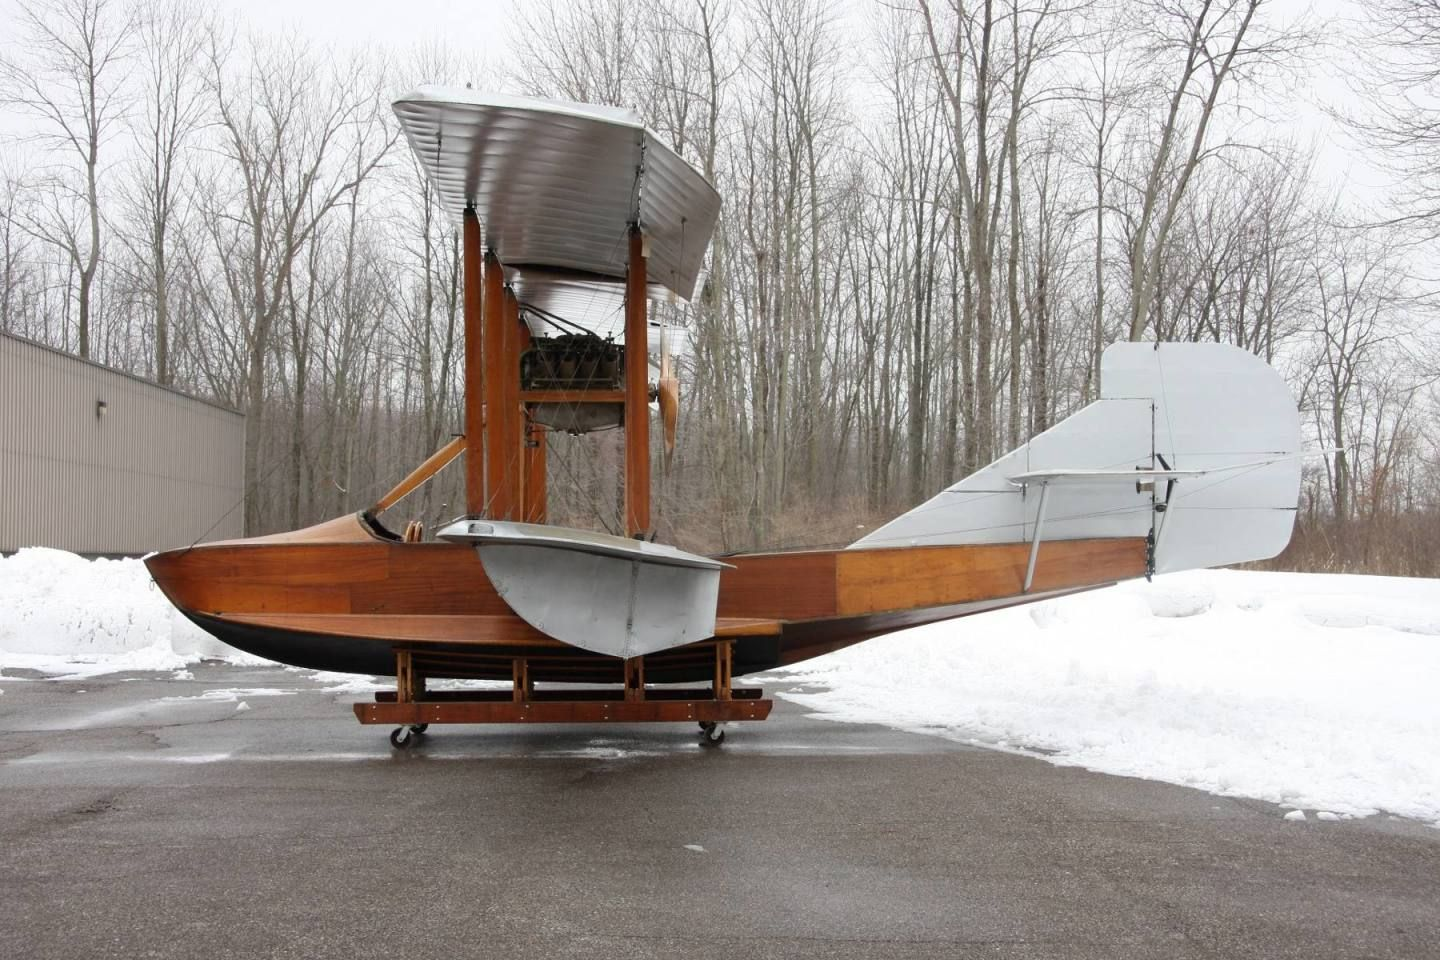 Flying Boat up for auction Curtiss MF Seagull in 2020